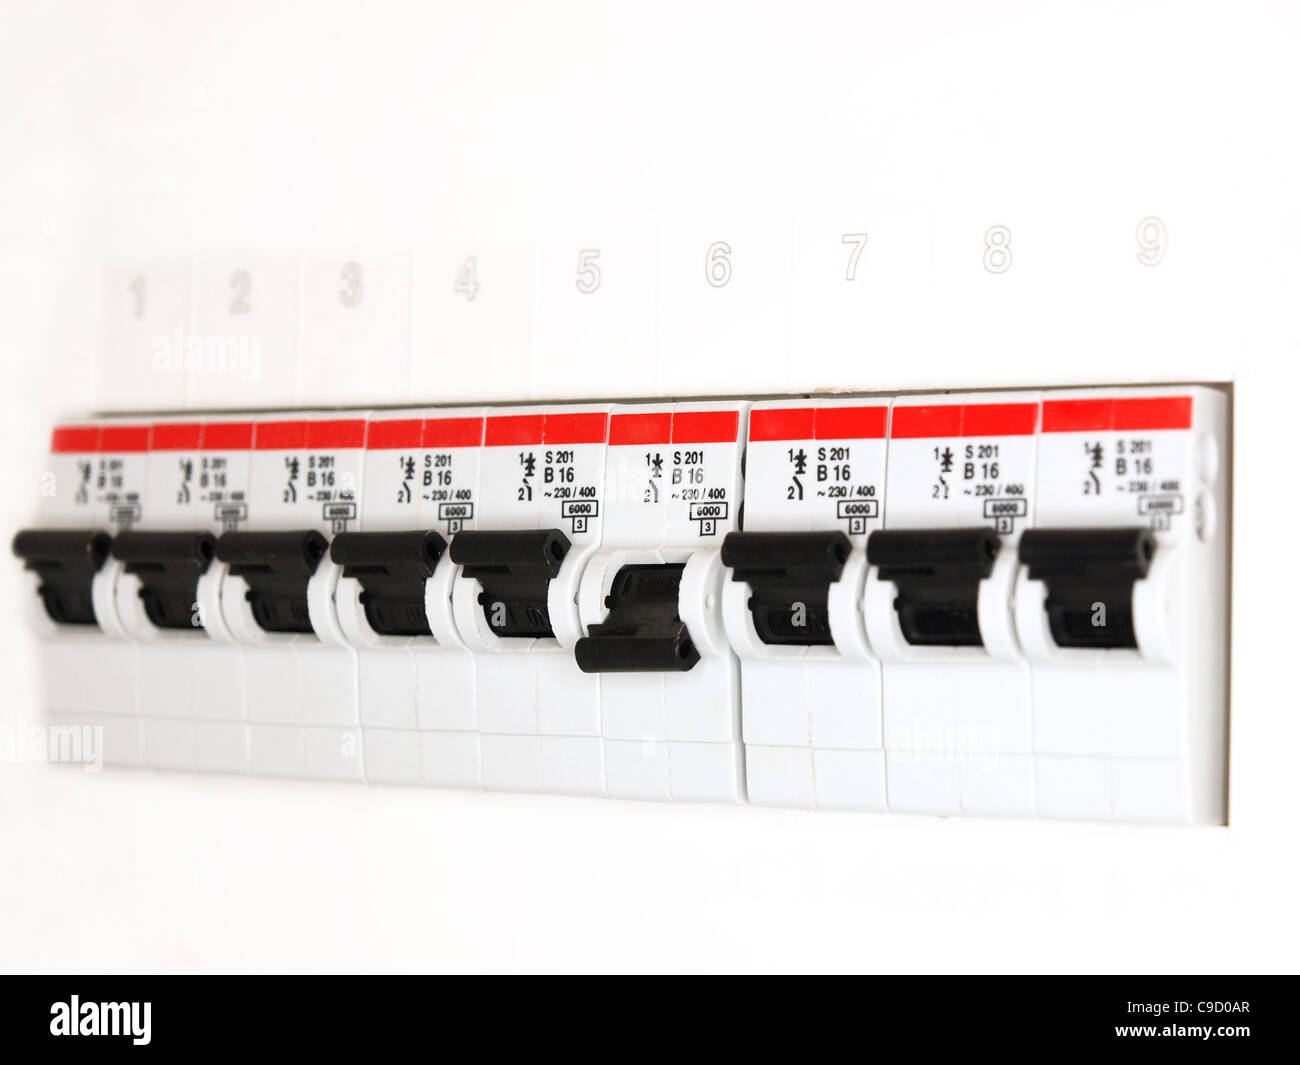 fuse box - Stock Image